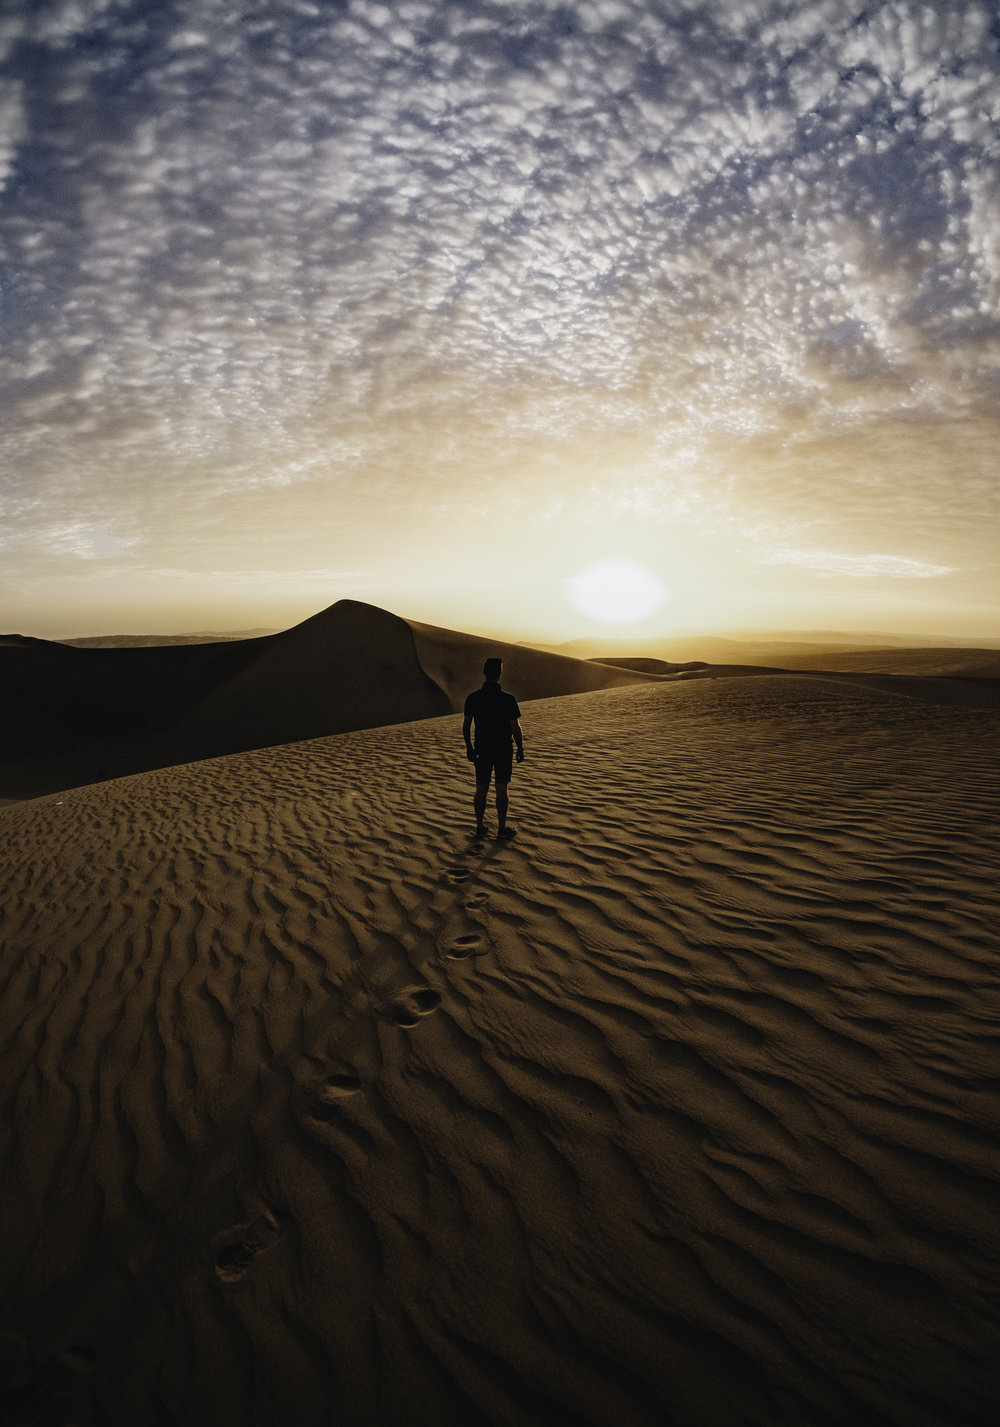 Sunset in the Huacachina desert dunes.